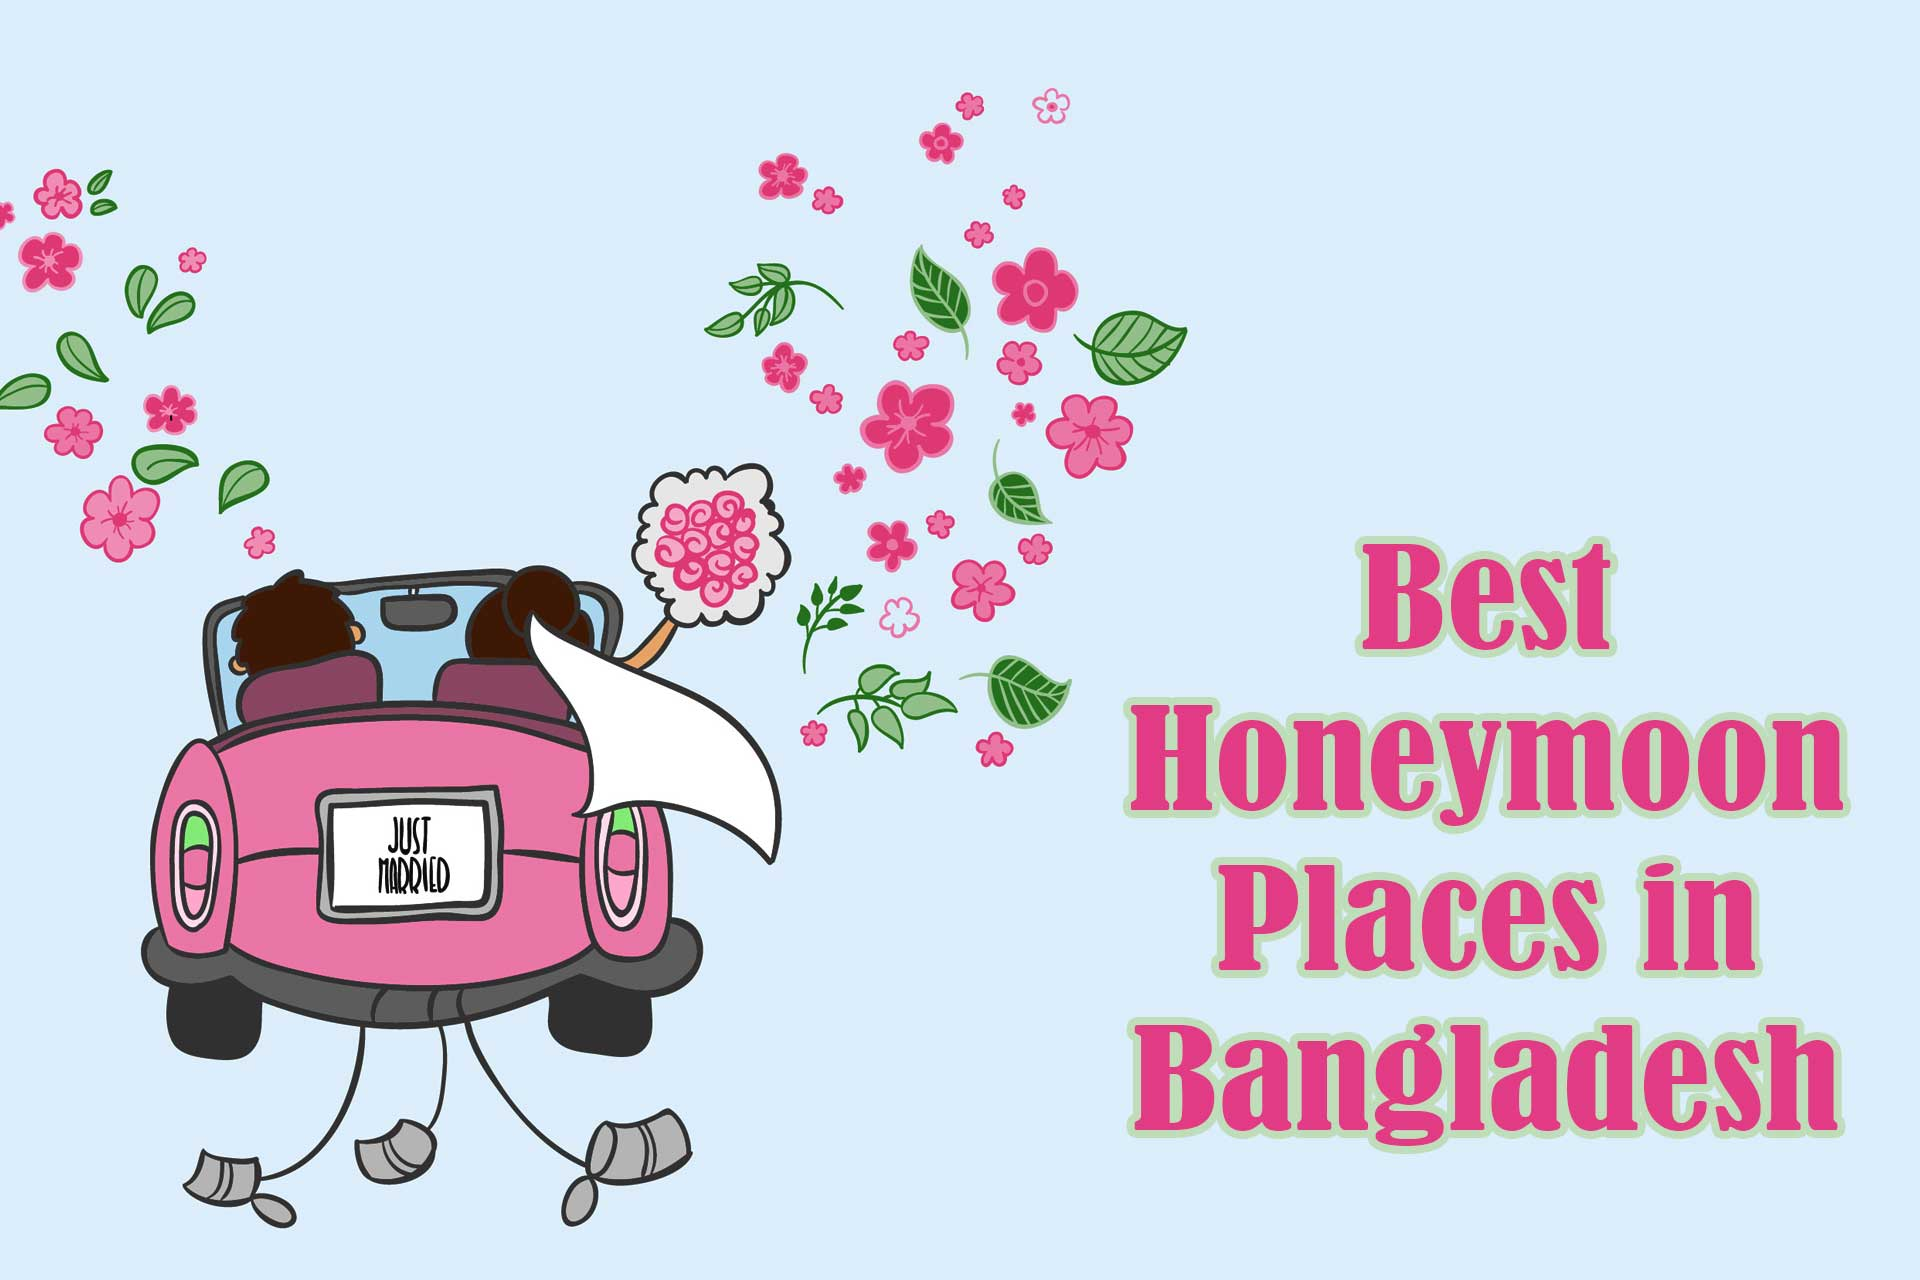 Best Honeymoon Places in Bangladesh